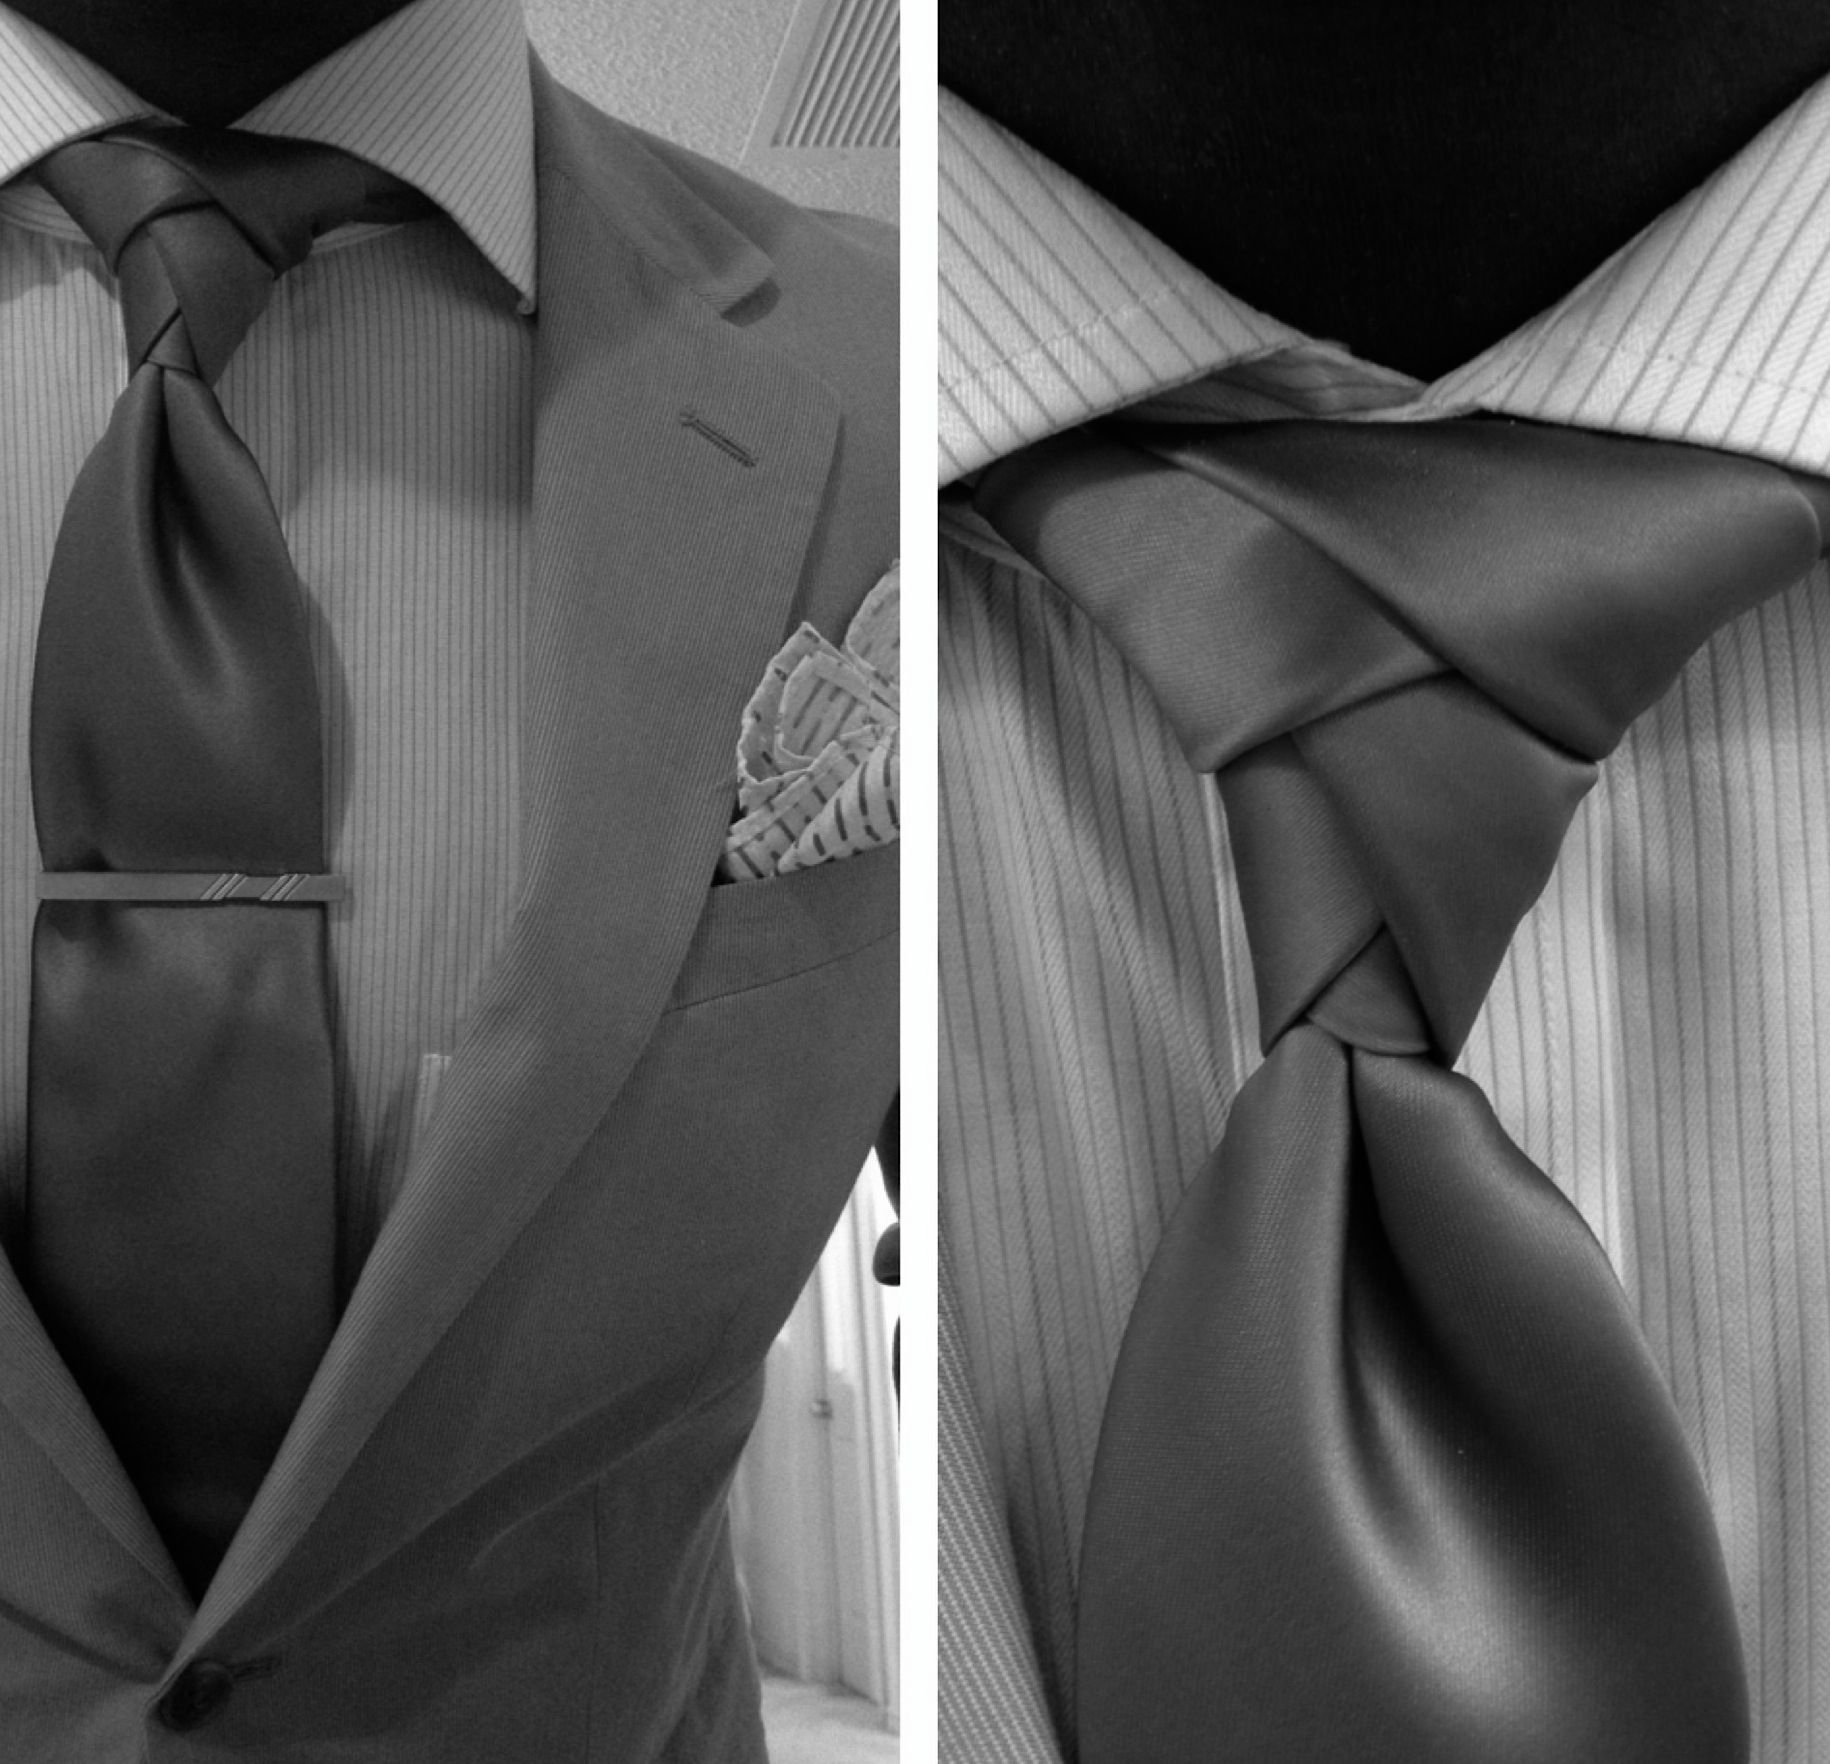 tie Eldridge Knot Is the next cool thing next to the old school Fav of mine the double windsor knot. Look out weddings this summer! I'm suited!!!!